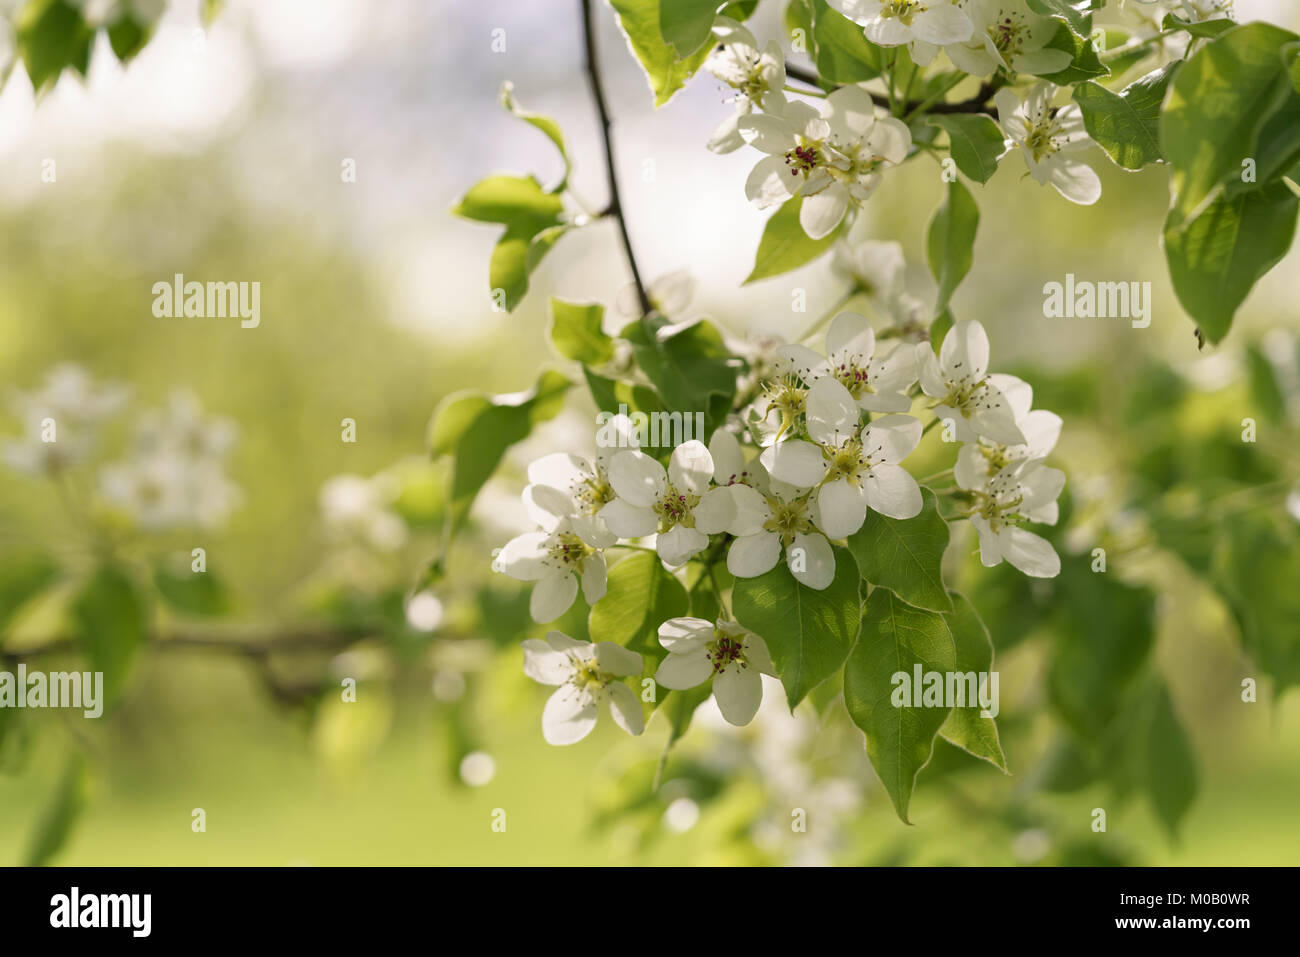 Closeup Of Blossoming Apple Tree With White Flowers In A Garden